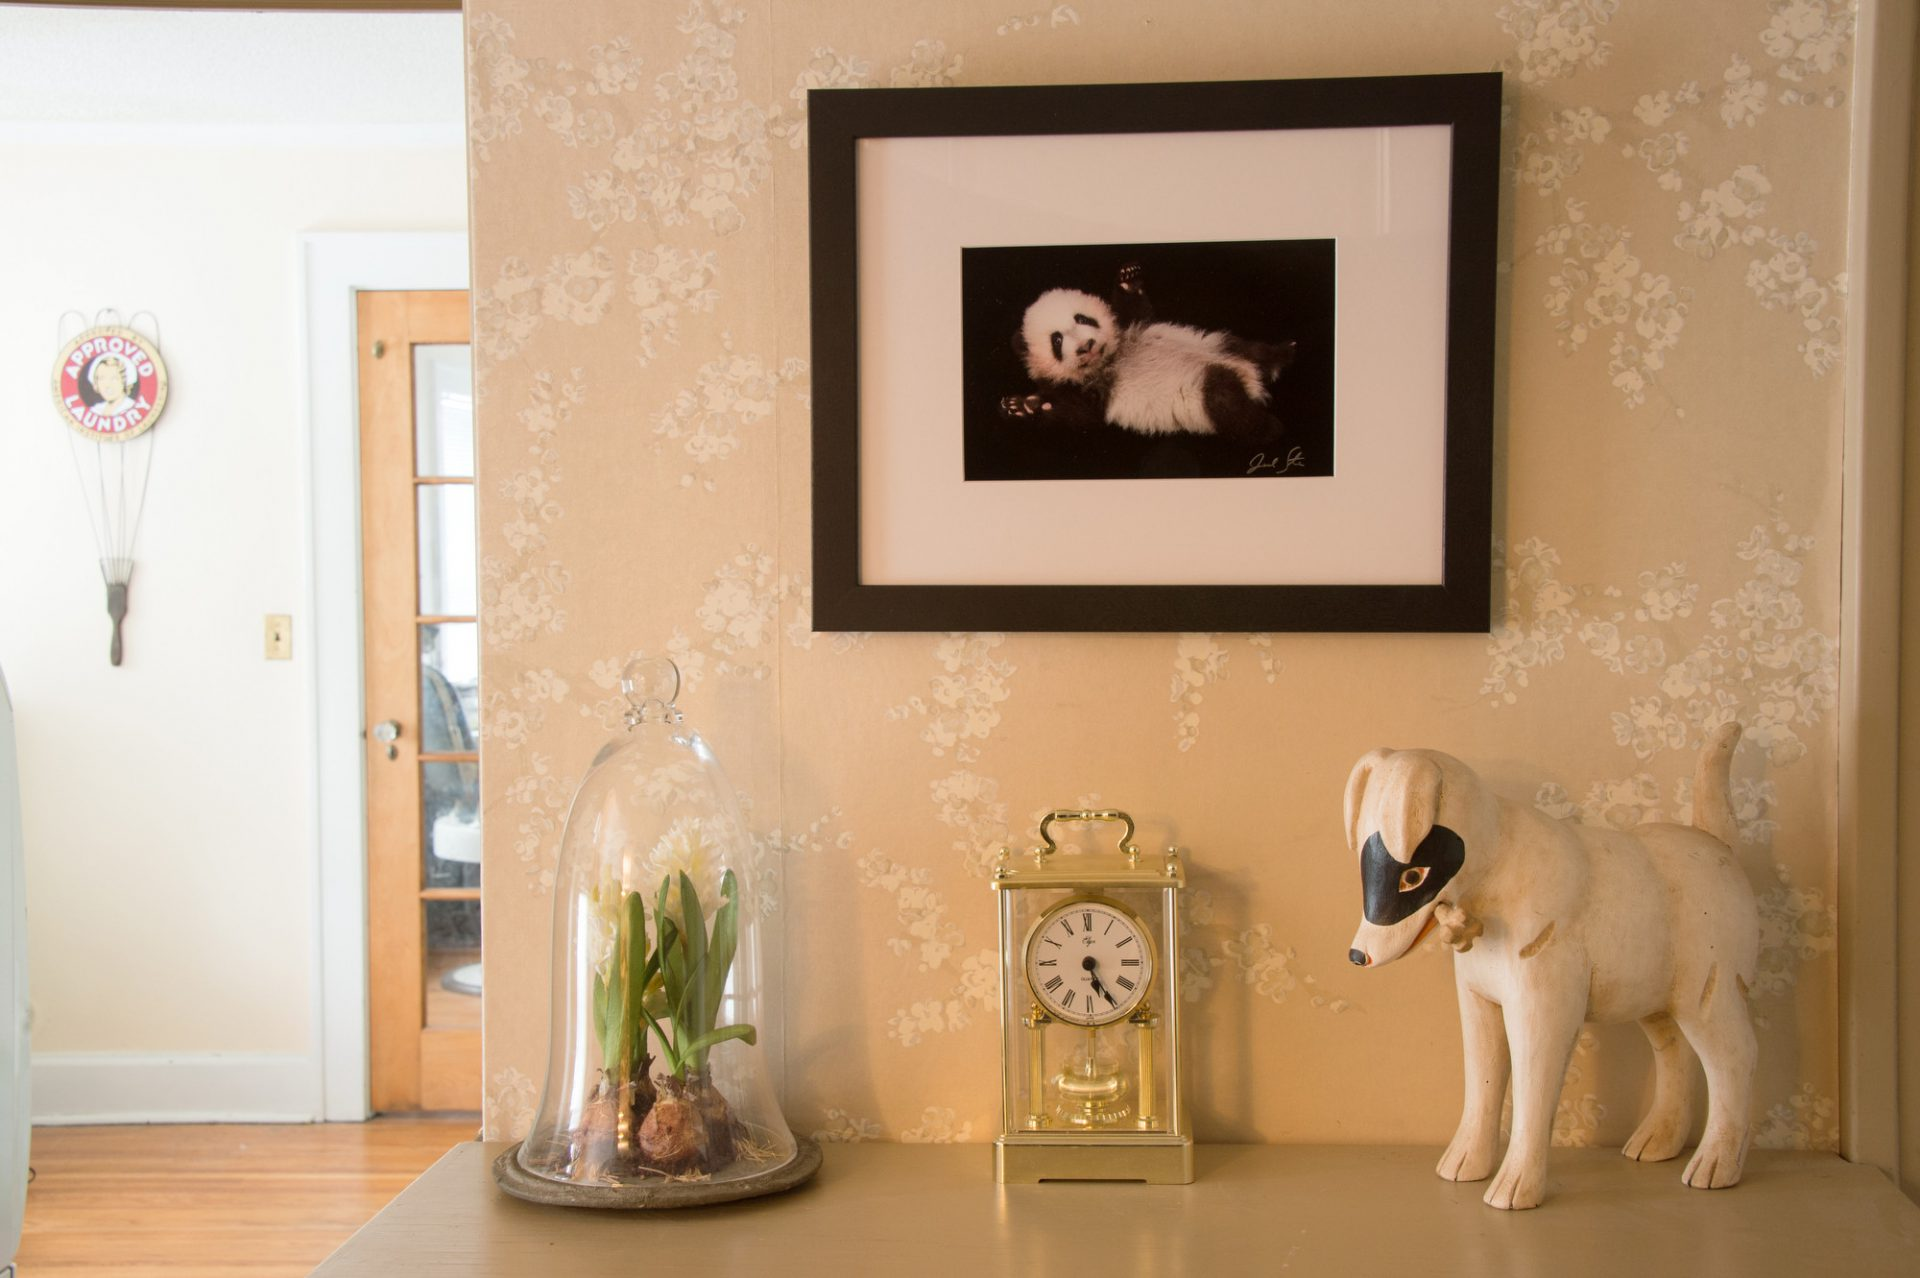 Photo: A framed and matted print of a baby panda.